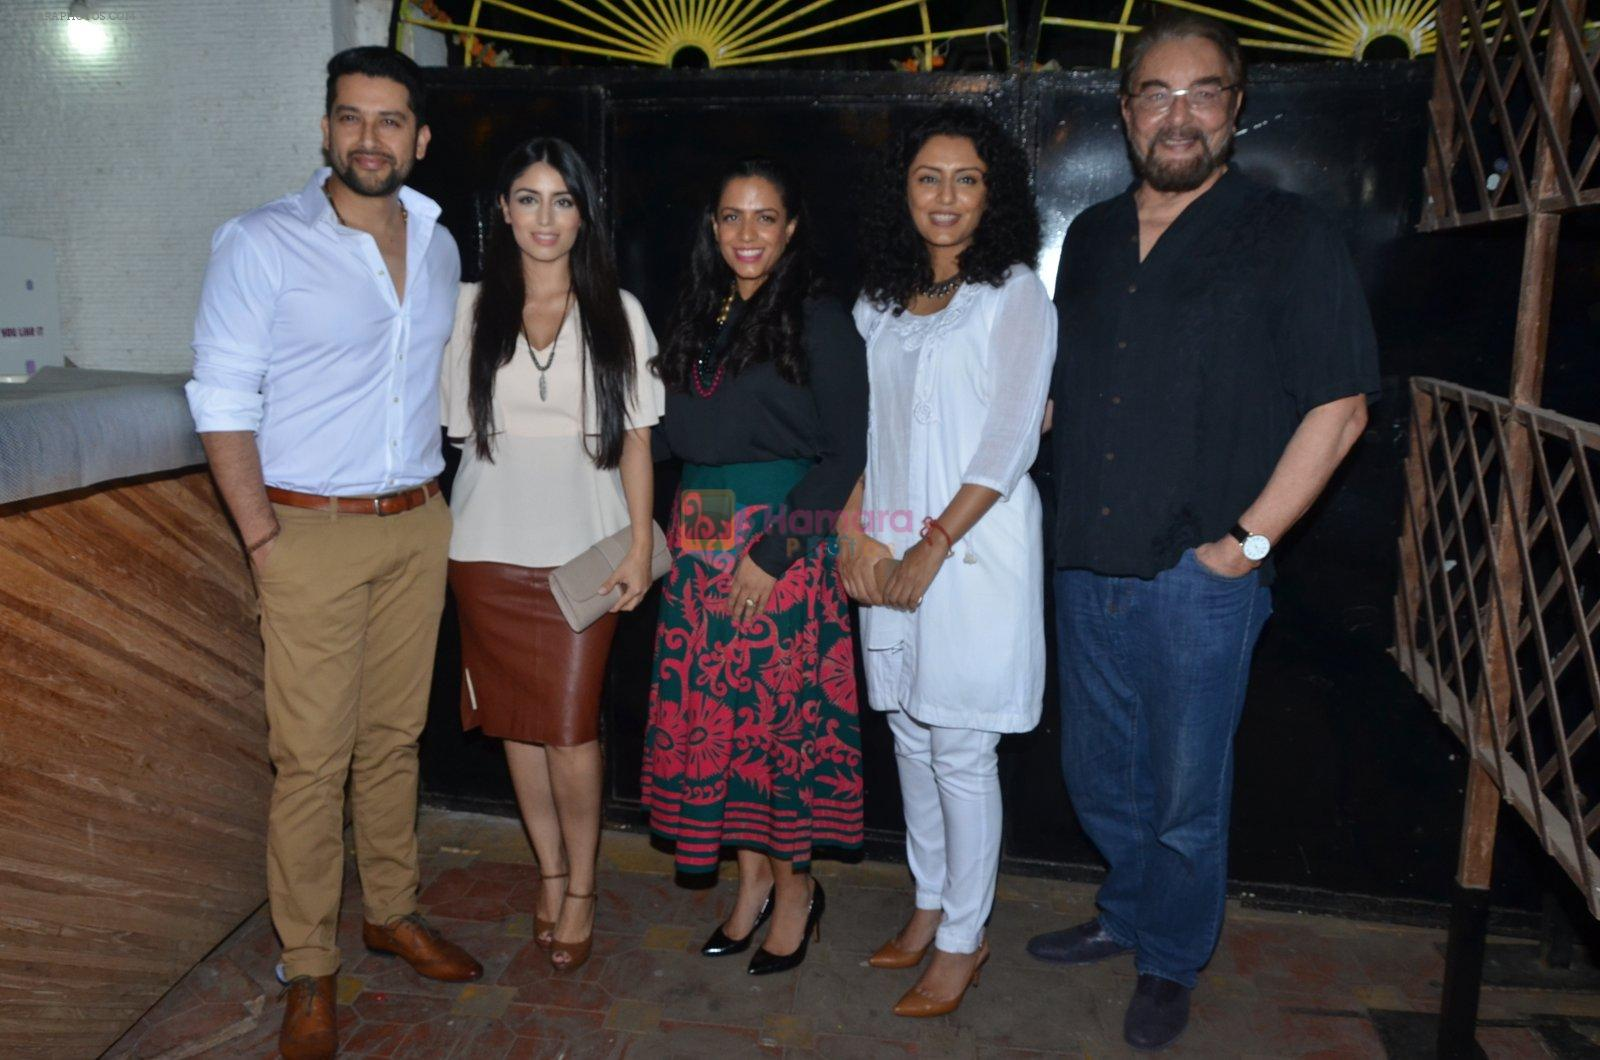 Parveen Dusanj - Bedi & Suki Dusanj promotes Sustainable fashion on 21st Nov 2016